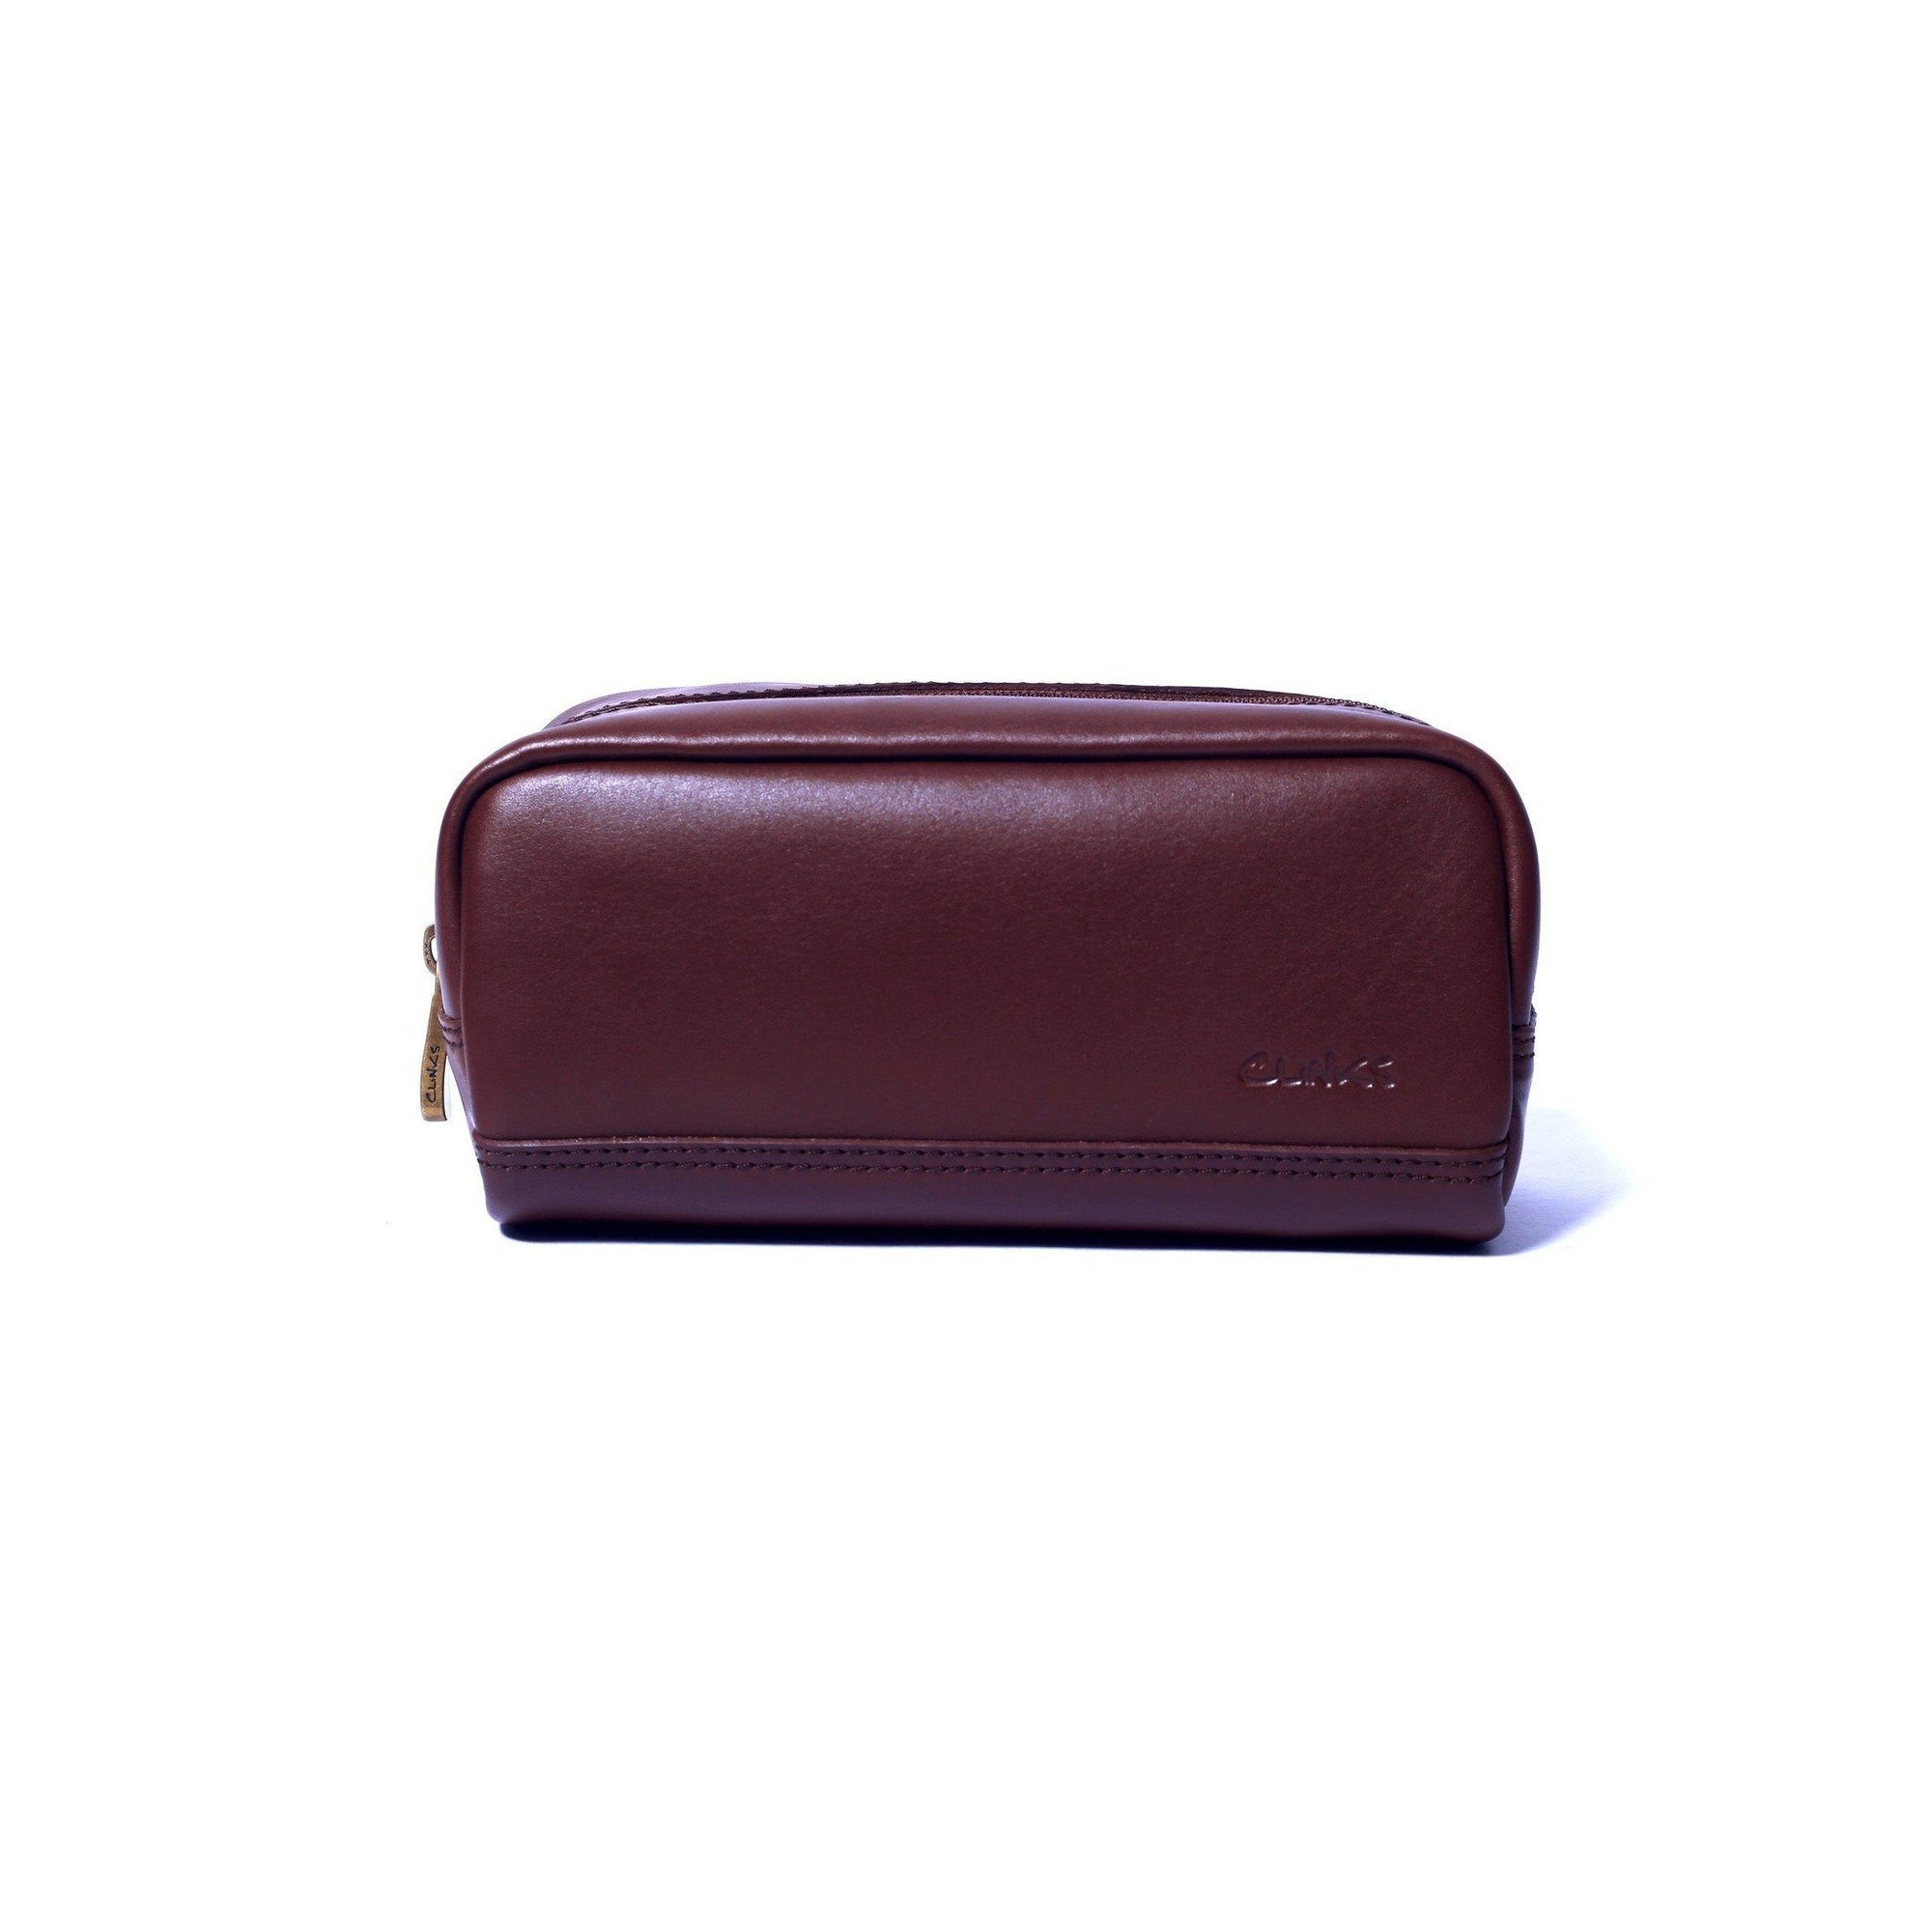 Small Leather Toiletry Bag in Dark Cognac, Leather Accessories, Cuffed.com.au, LB1011, $69.00